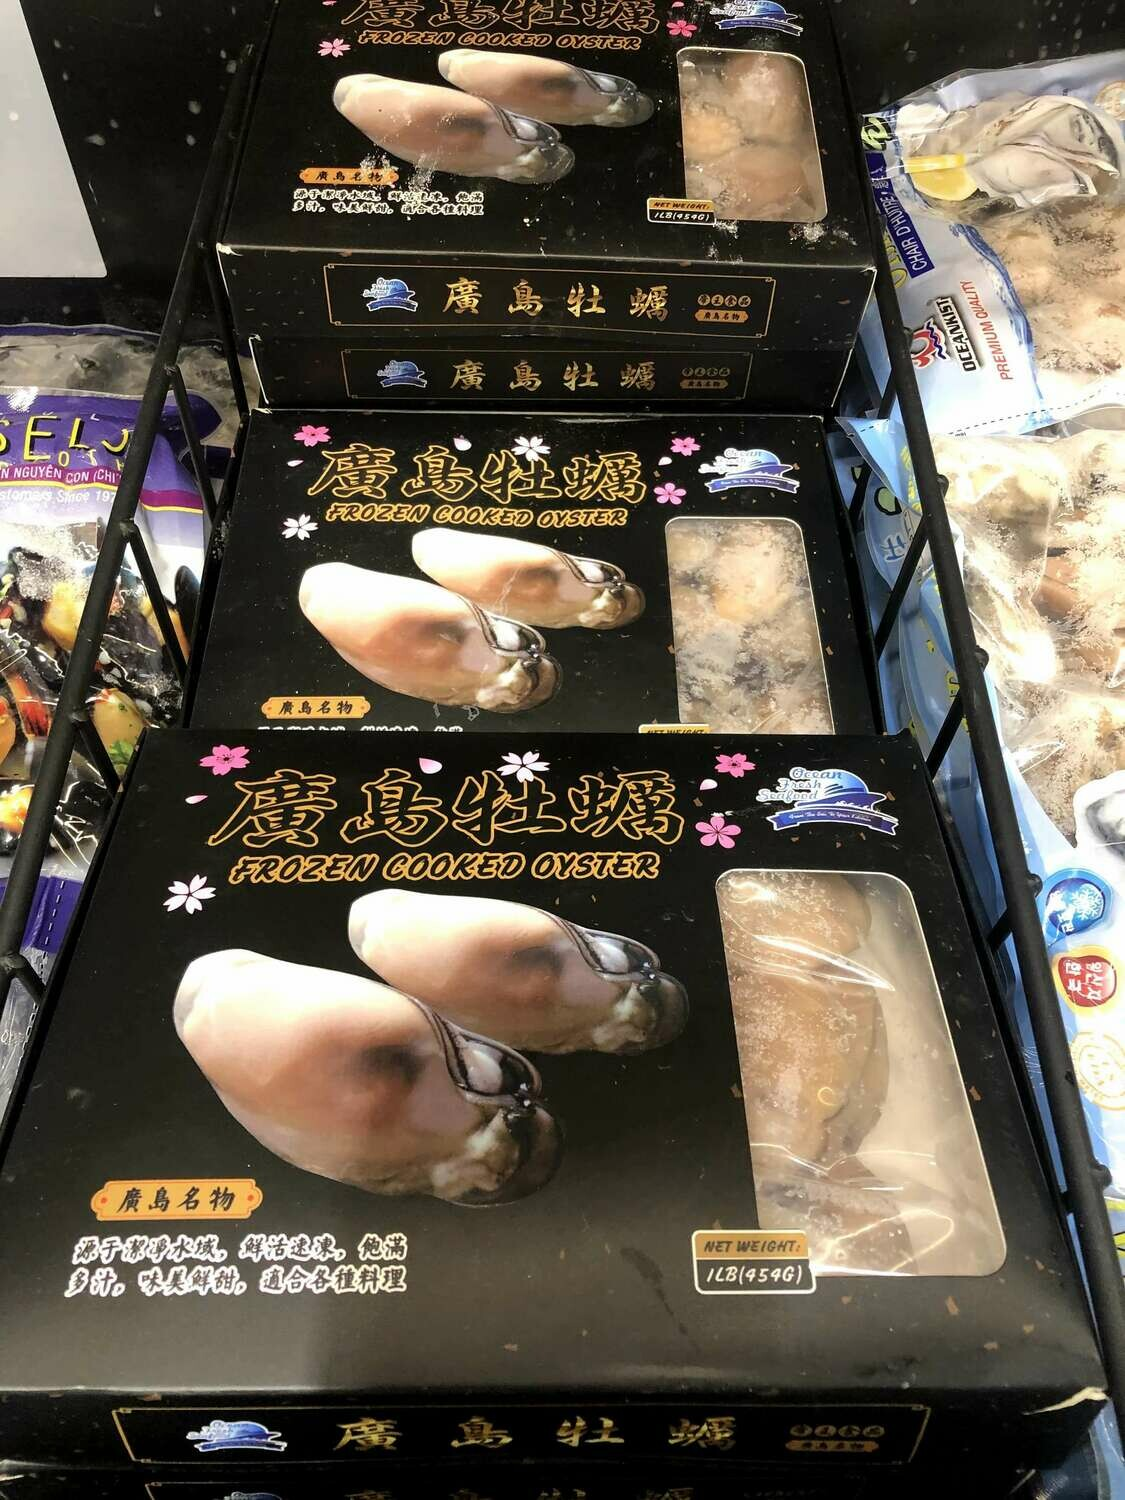 【RBS】Frozen Cooked Oyster 广岛牡蛎 1LB(454g)